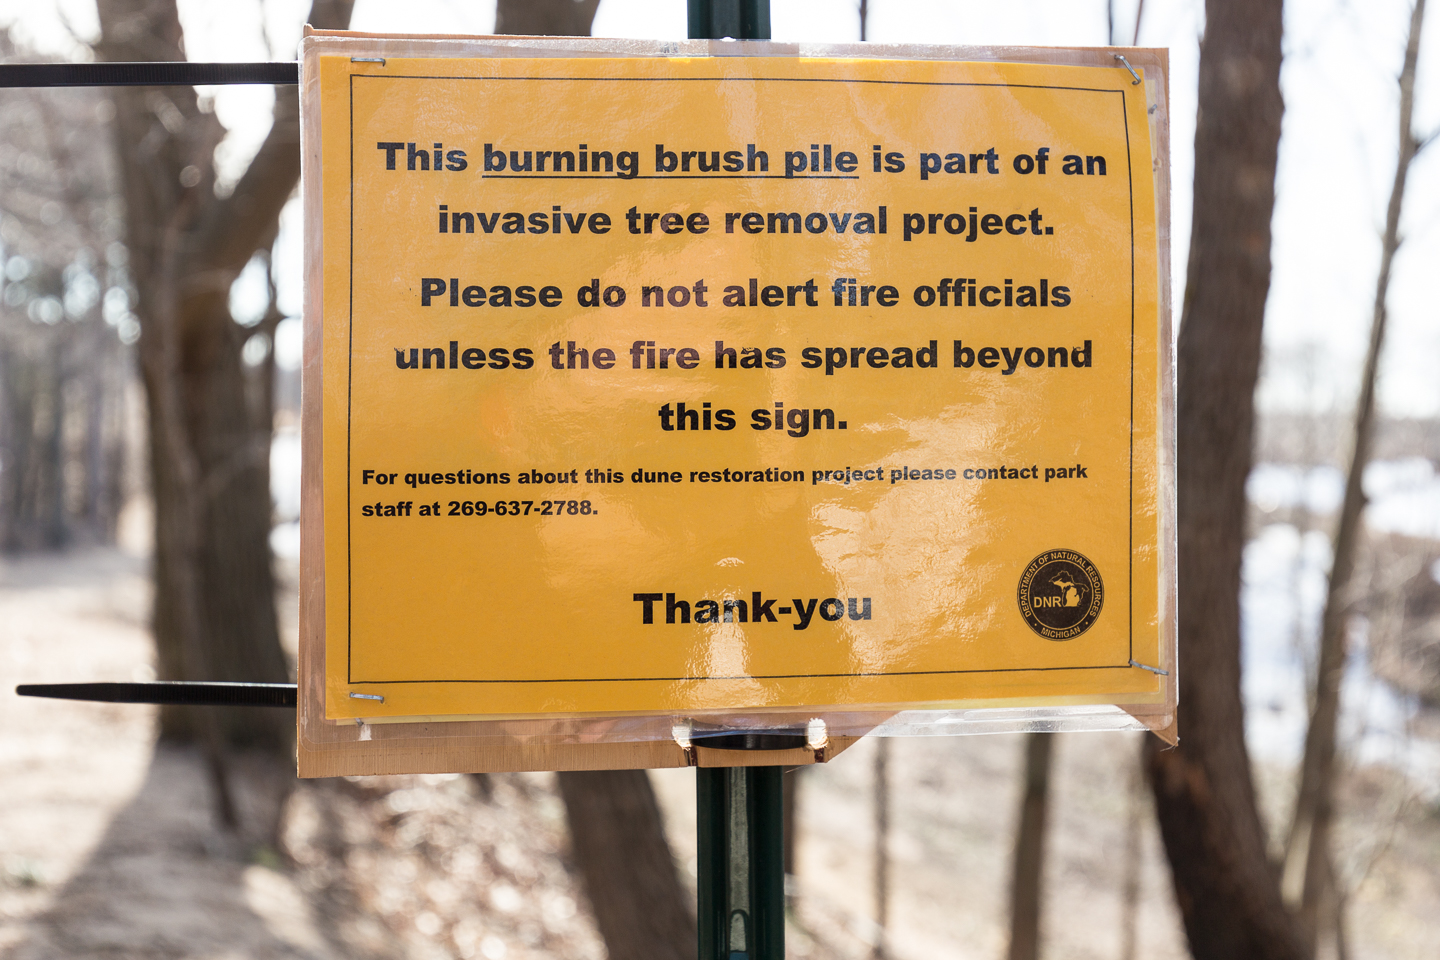 What are the chances that this sign will survive the fire if it reaches this point? Or that a hiker would be standing in the fire reading it?